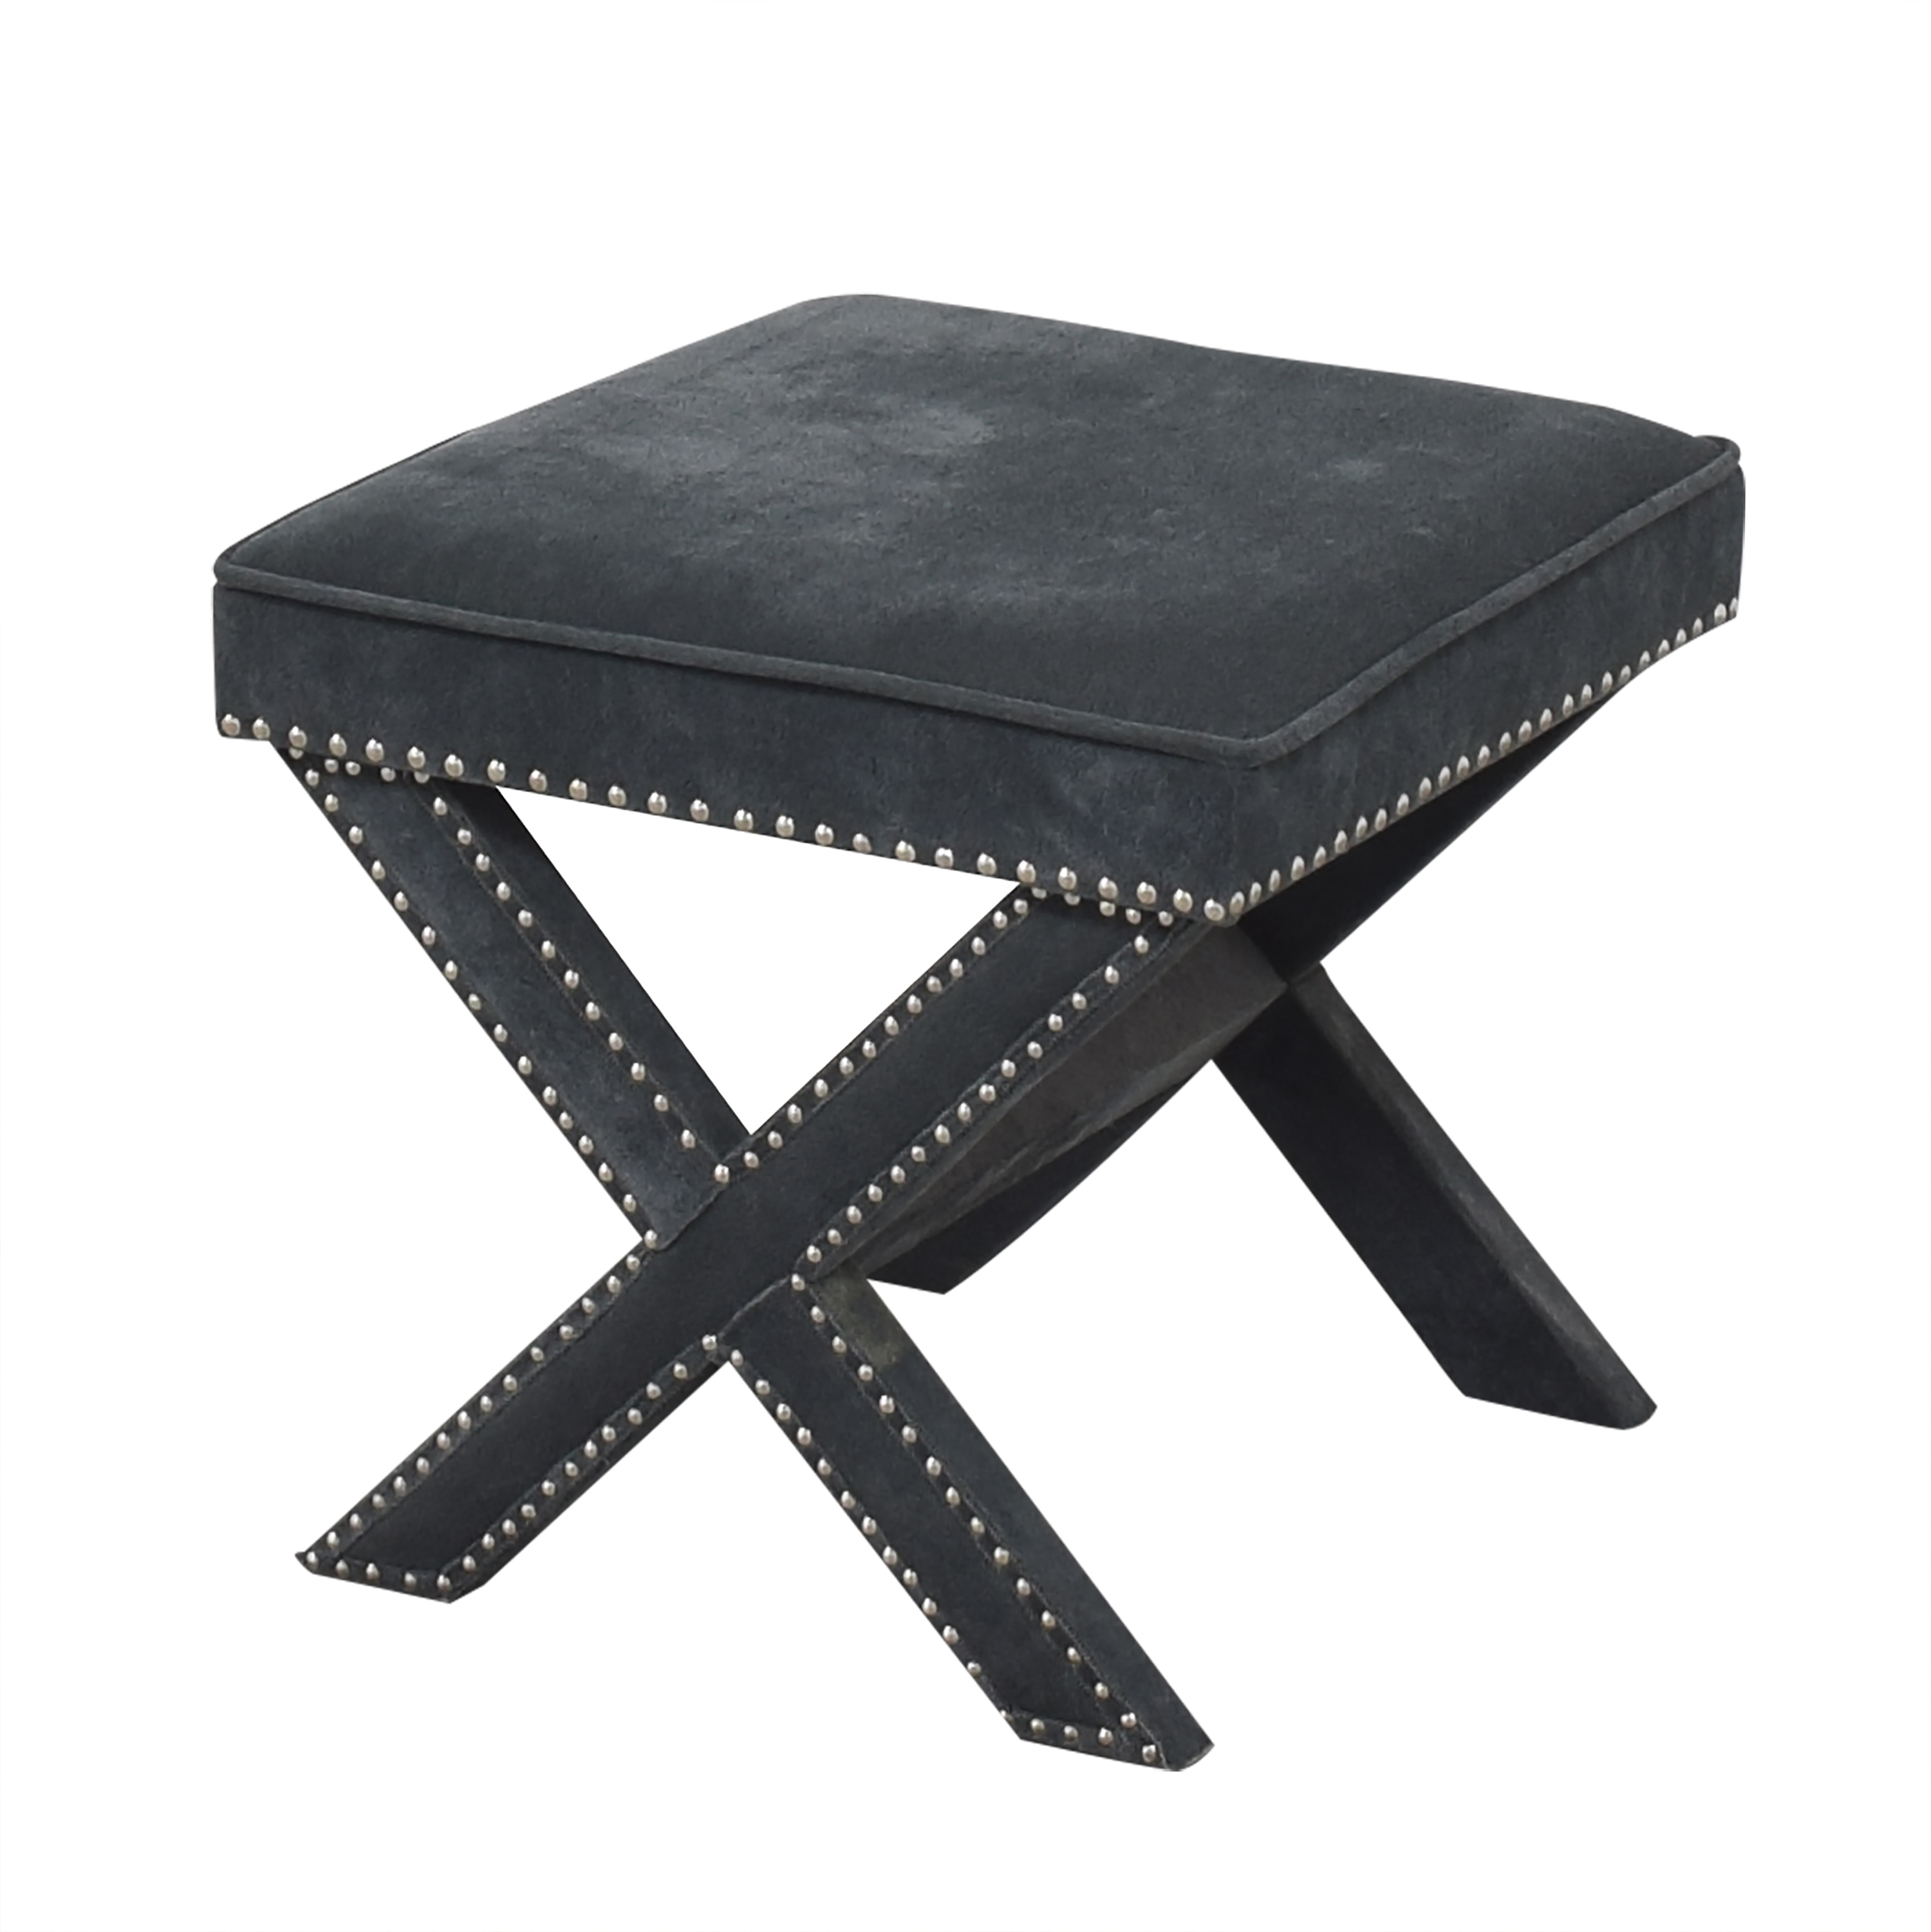 Studded X Bench Ottoman used